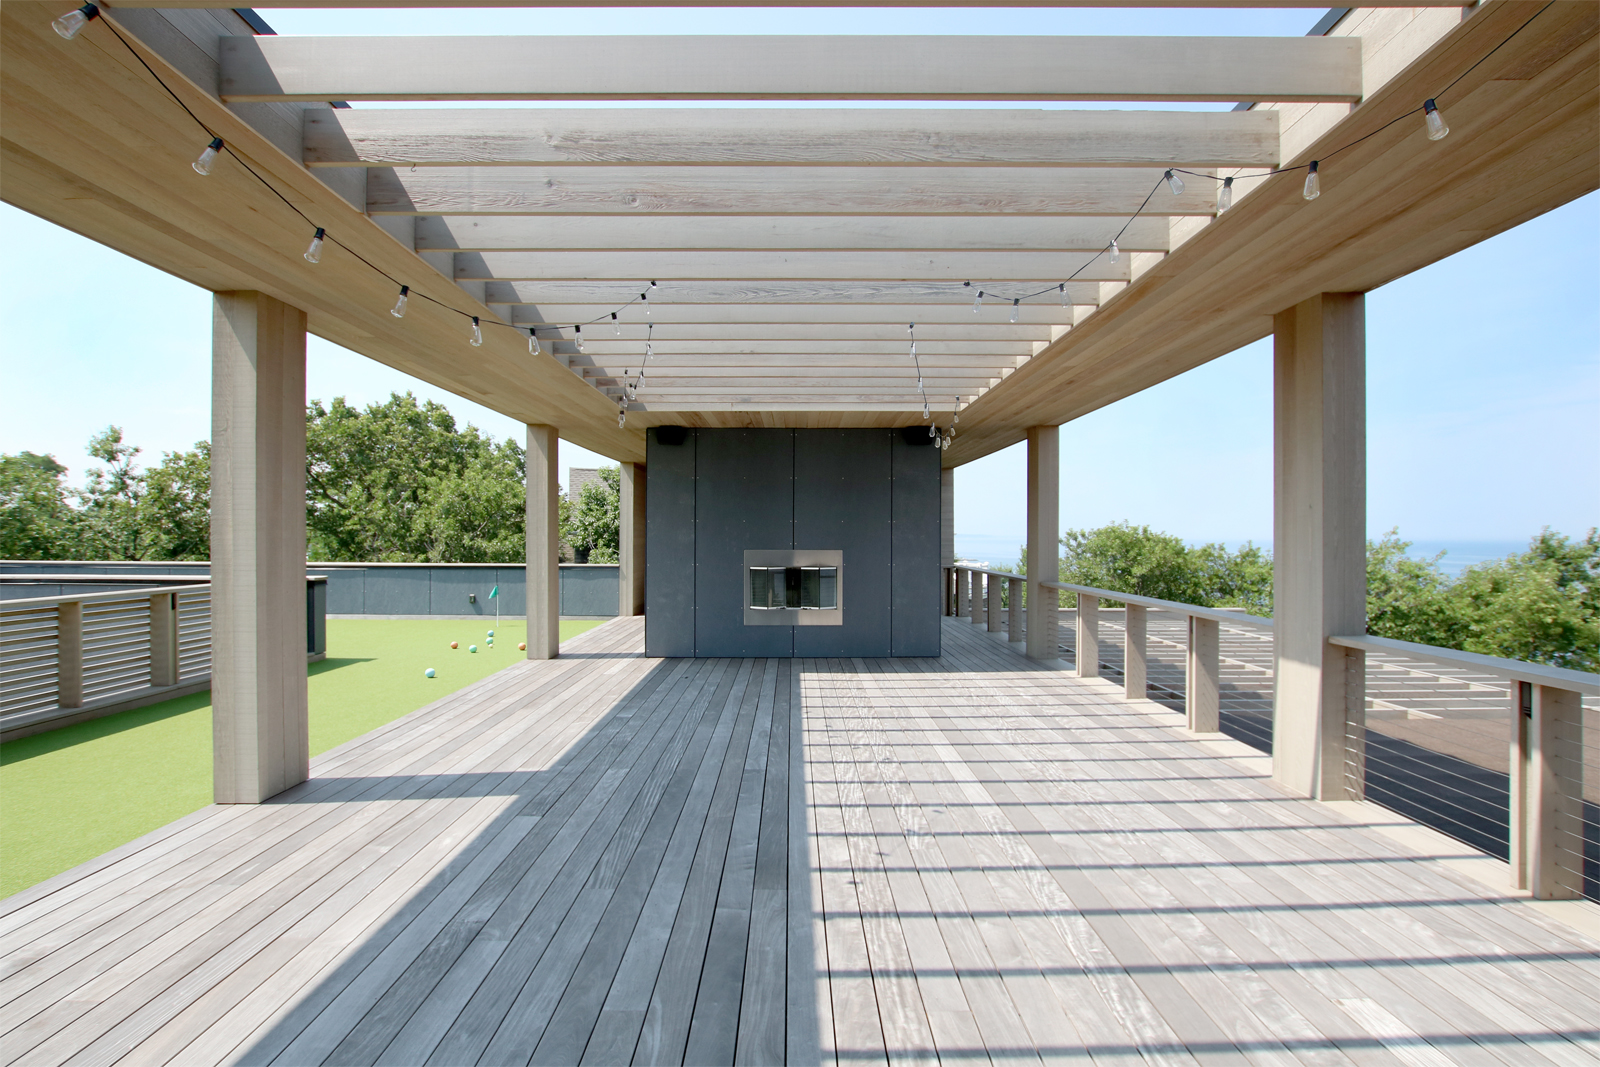 10-res4-resolution-4-architecture-modern-modular-house-prefab-home-north-fork-bluff-house-exterior-roof-deck-lounge-trellis-fireplace-golf-course.jpg